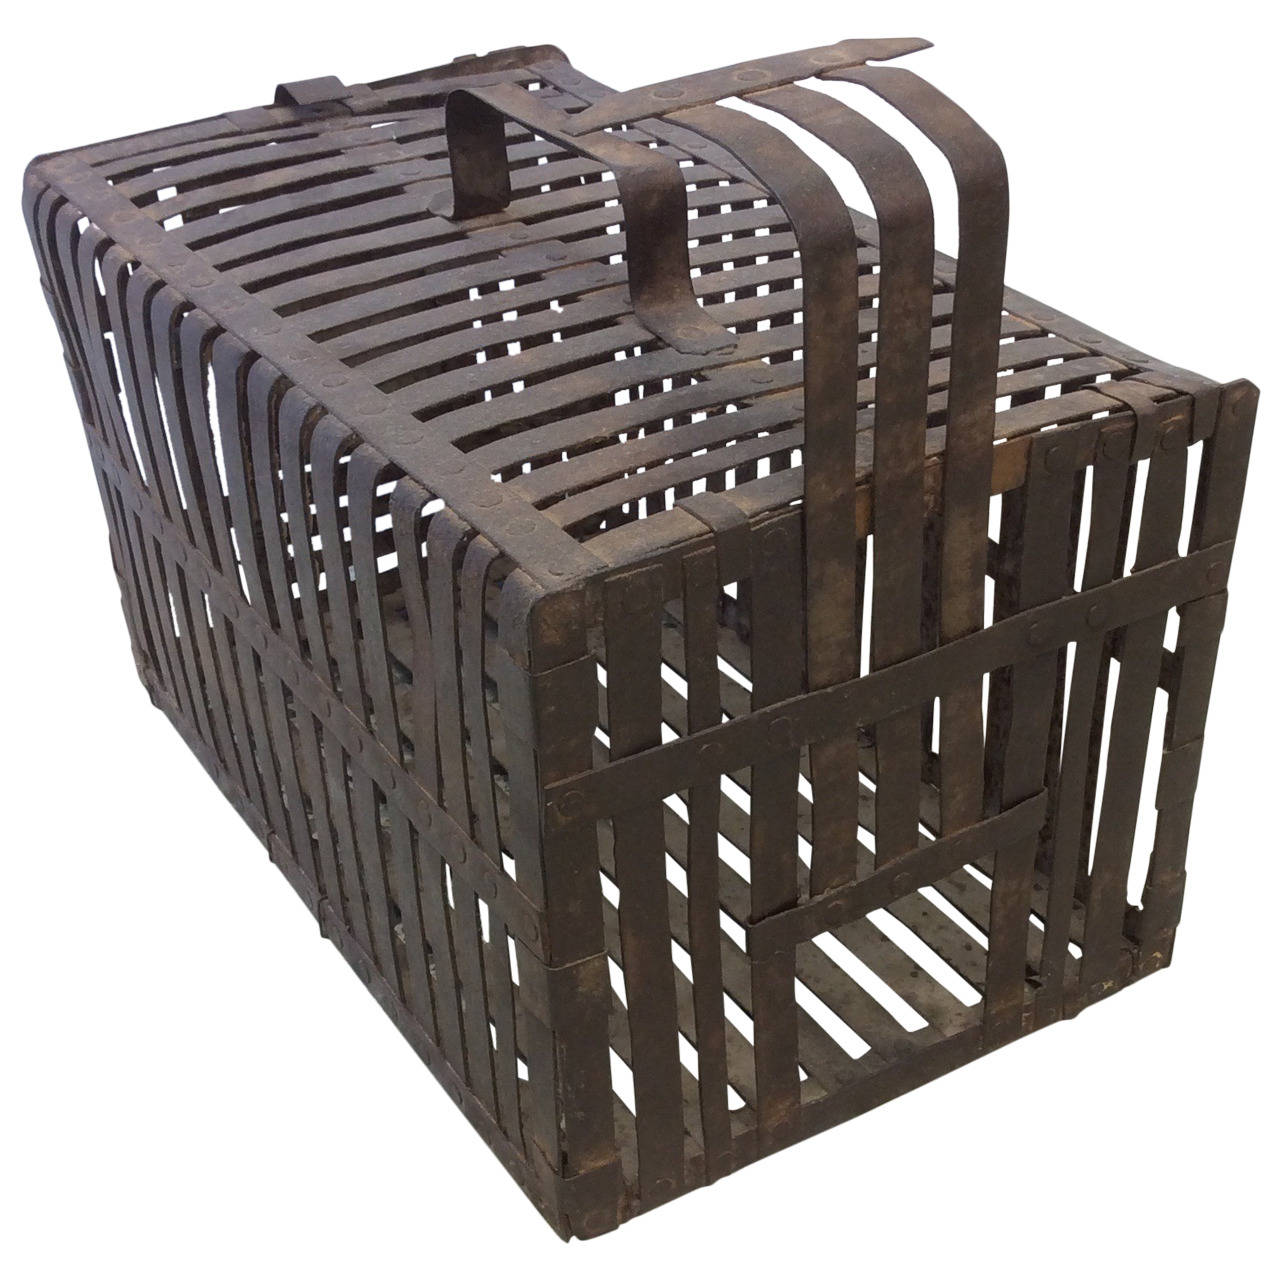 Vintage Mouse Trap Cage Height 8 In 20 Cm Width 13 In 33 Cm Depth 8 In 20 Cm Mouse Traps Vintage Traps